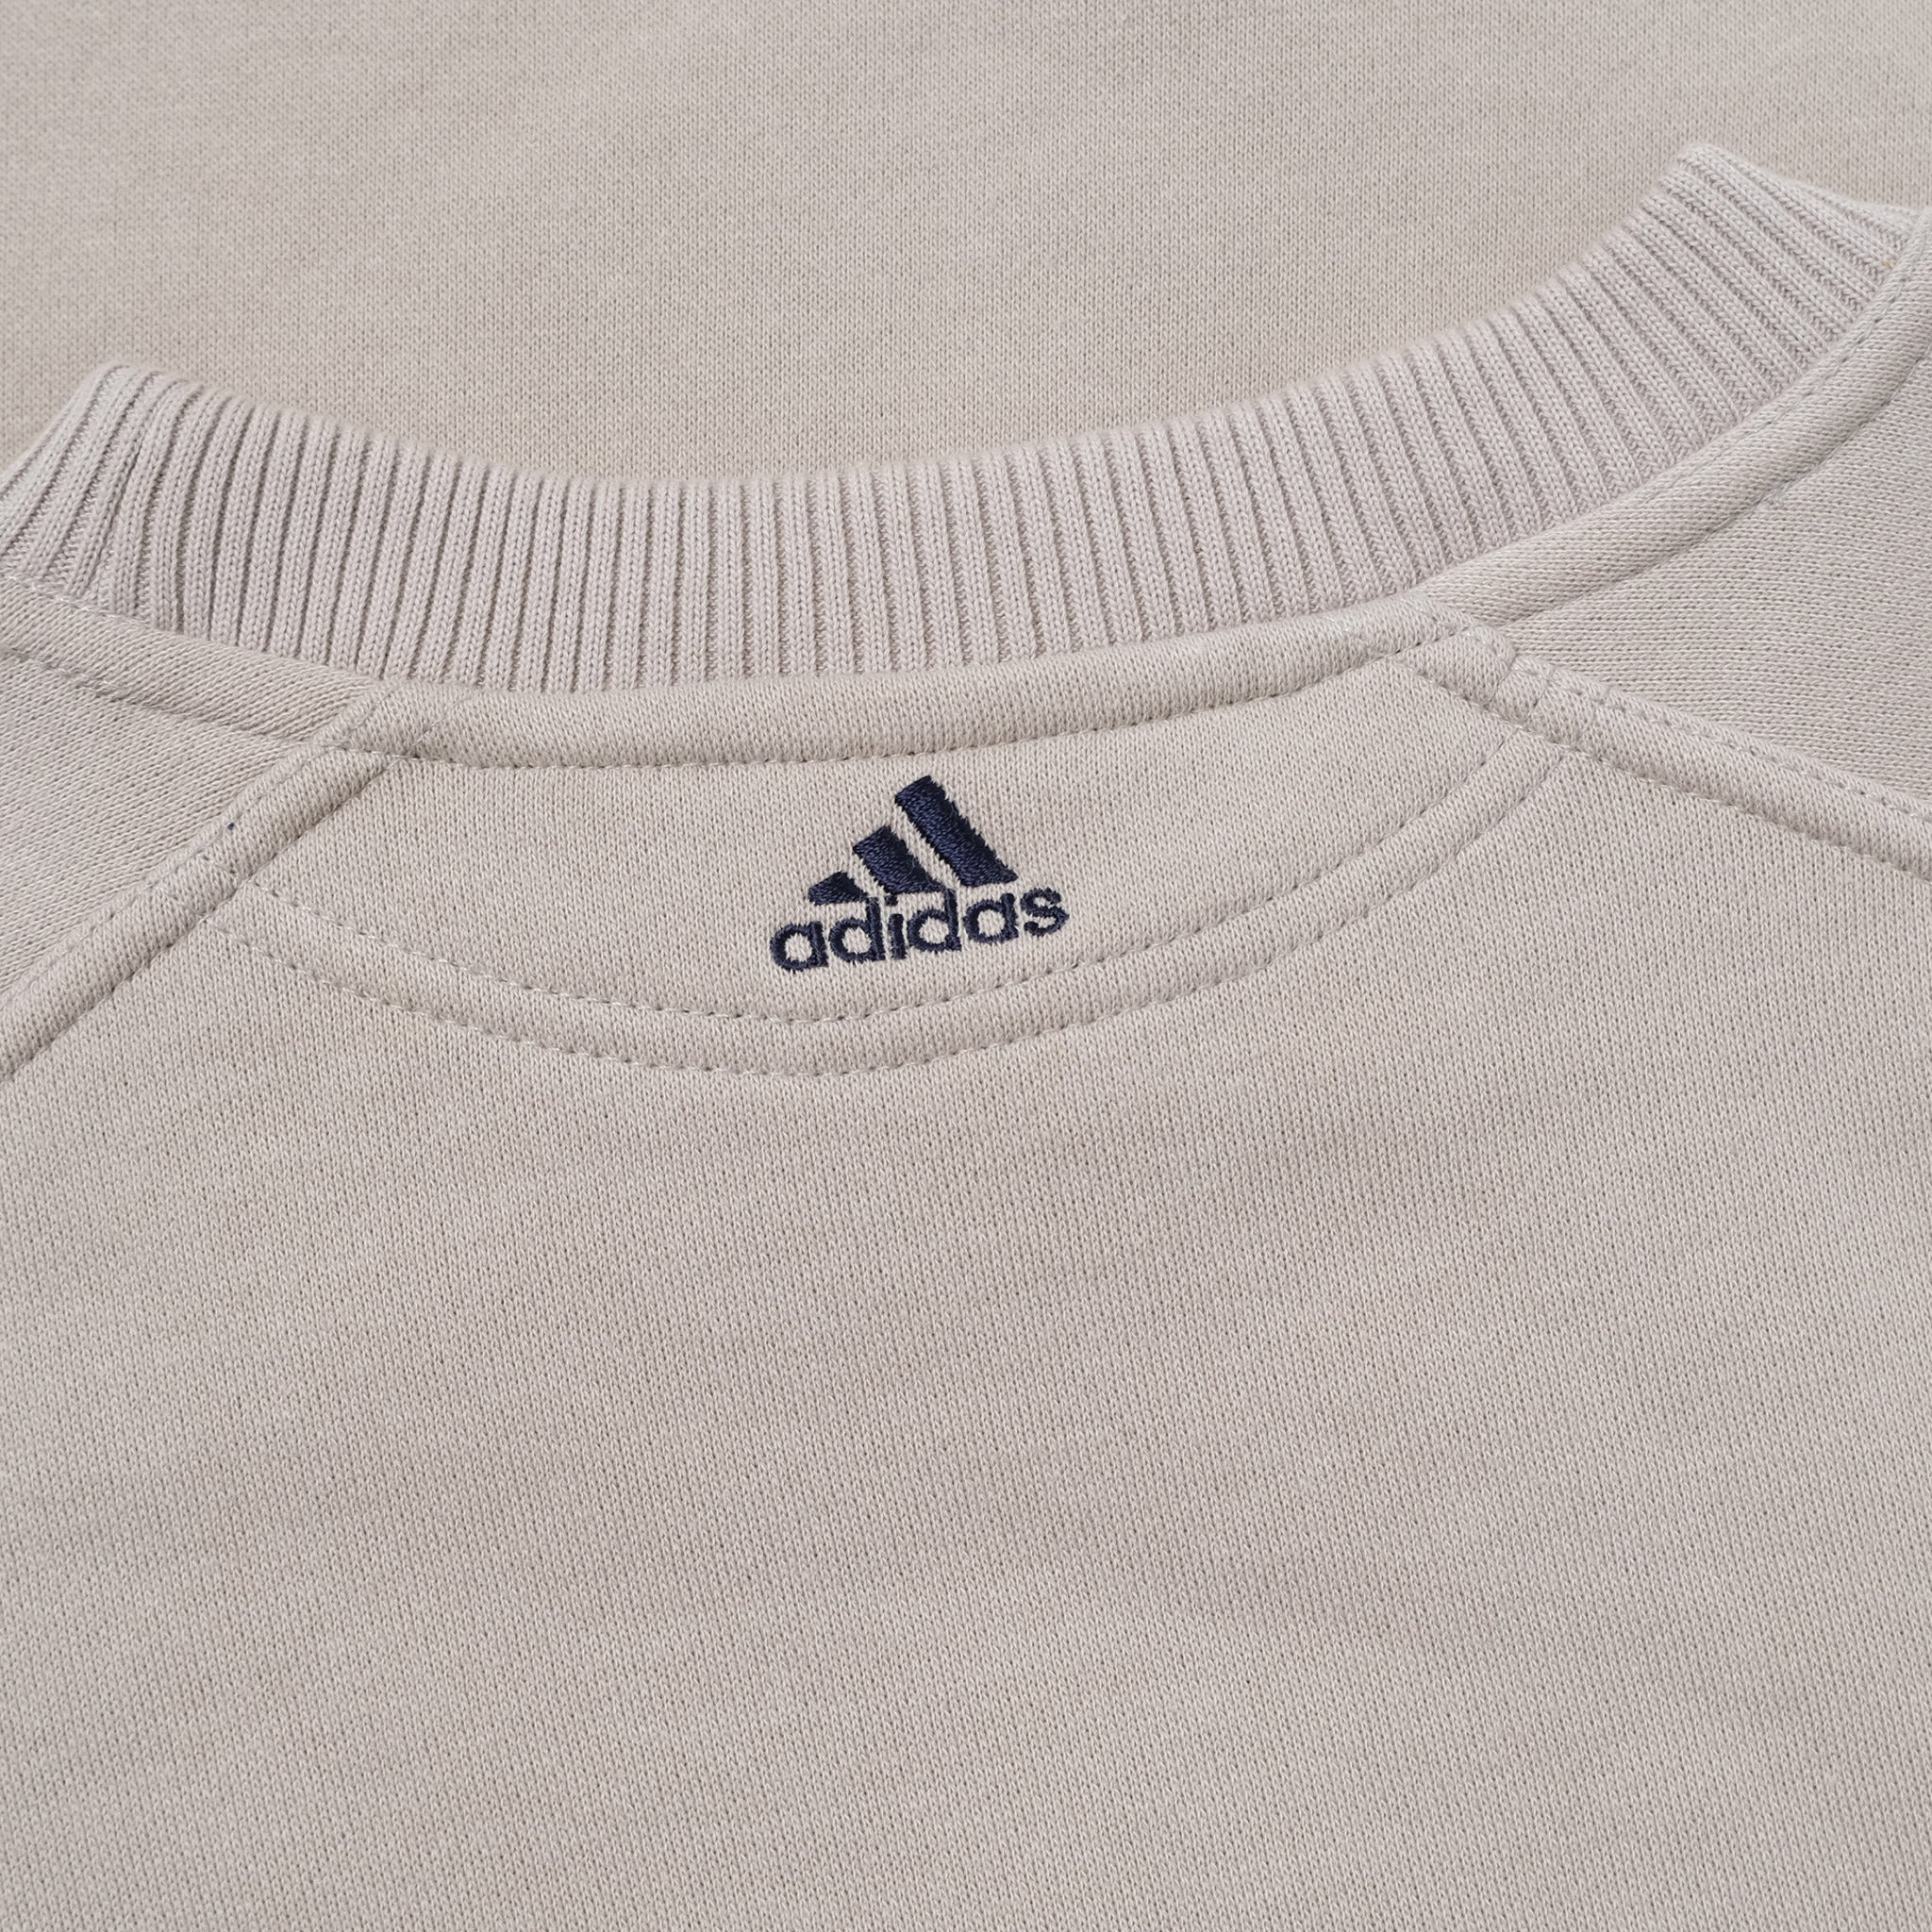 Vintage Deadstock adidas Women's Sweater XS / Small